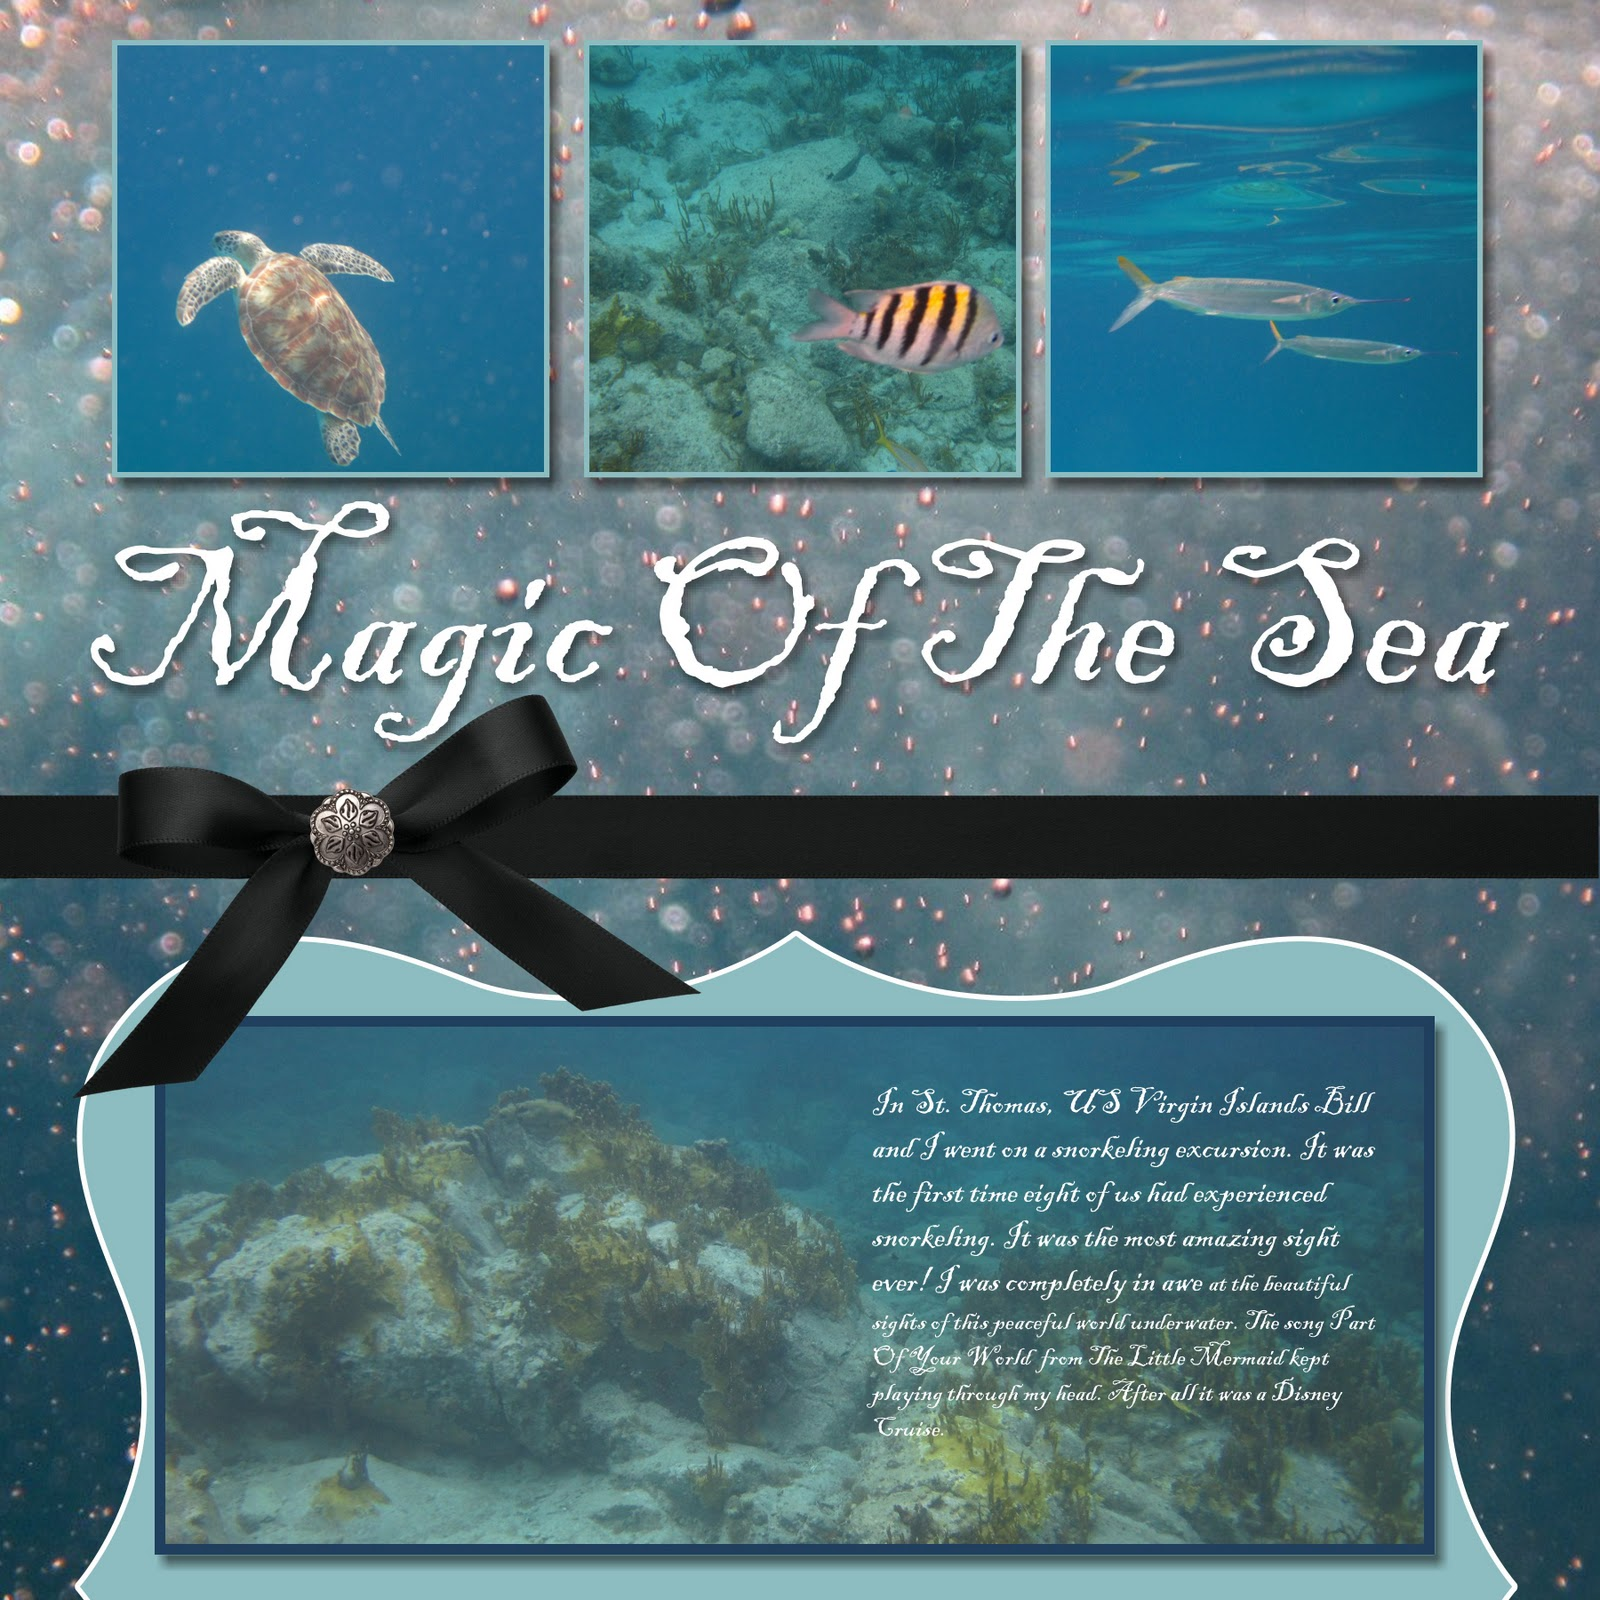 Magic of the Sea